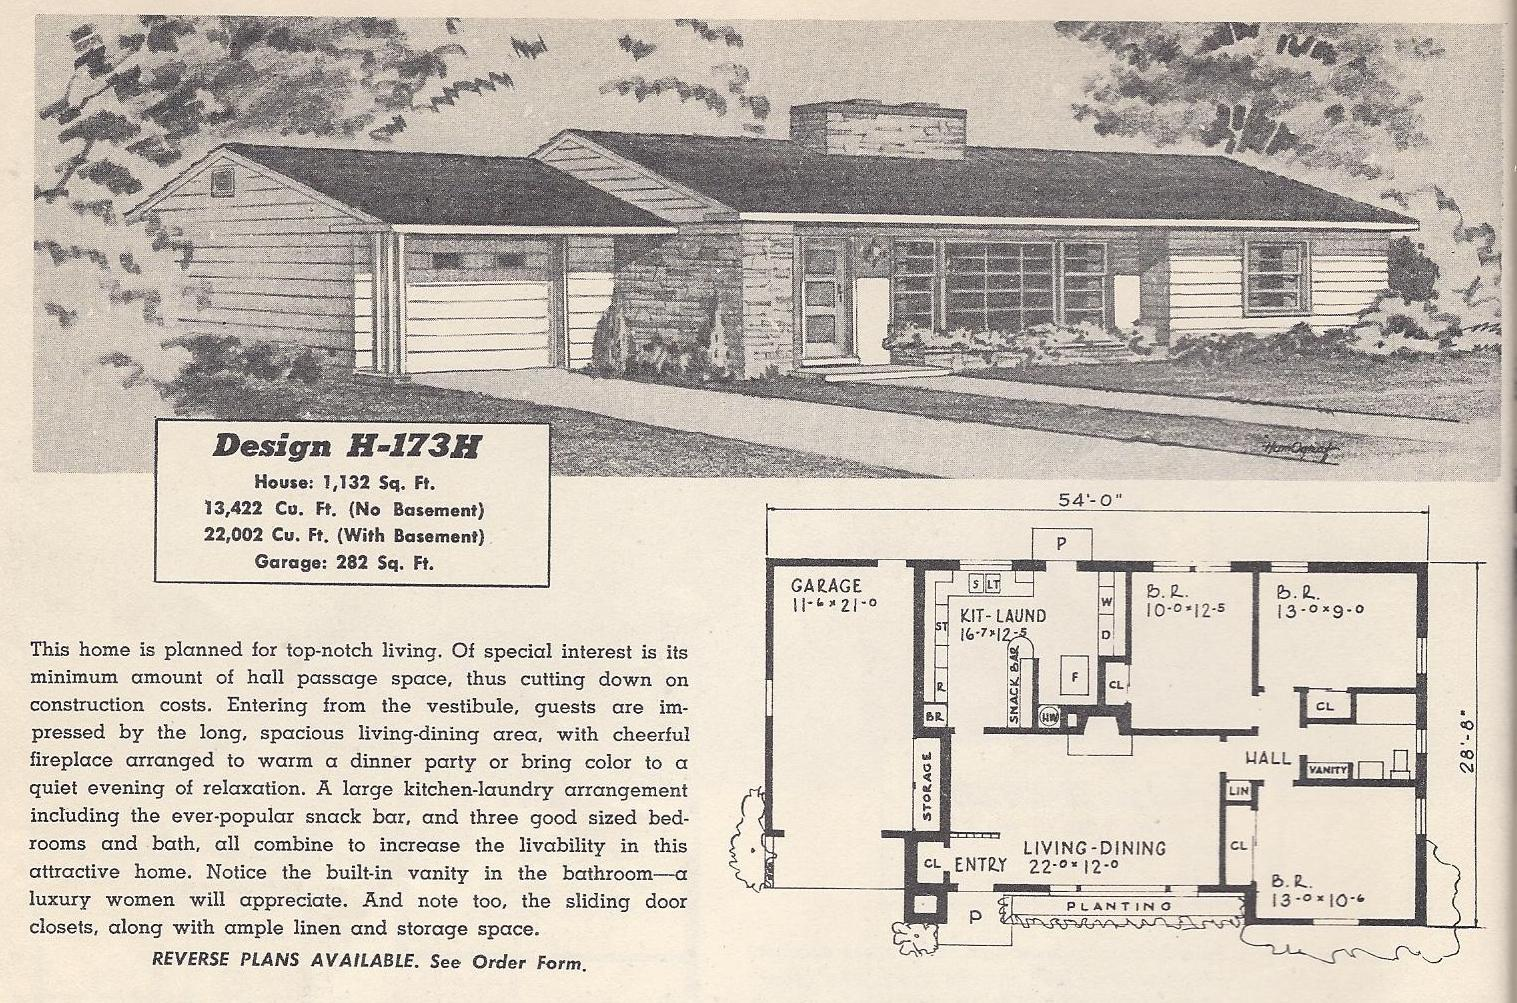 Vintage house plans 173h antique alter ego for Vintage home plans